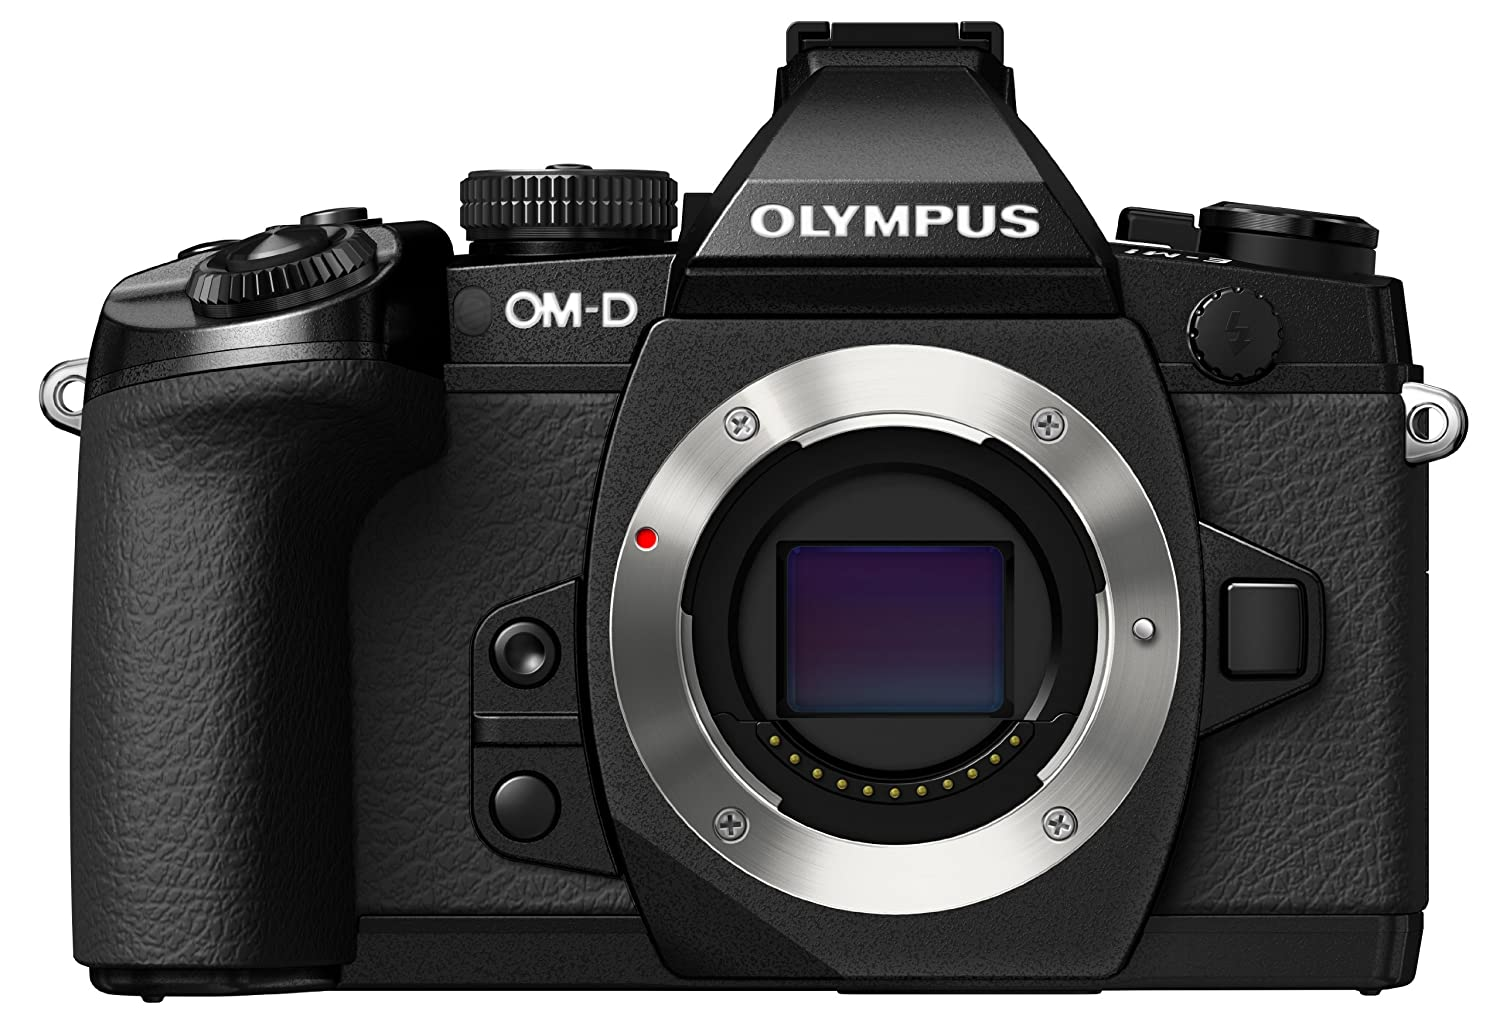 Amazon.com : Olympus OM-D E-M1 Mirrorless Digital Camera with 16MP and  3-Inch LCD (Body Only) (Black) : Compact System Digital Cameras : Camera &  Photo